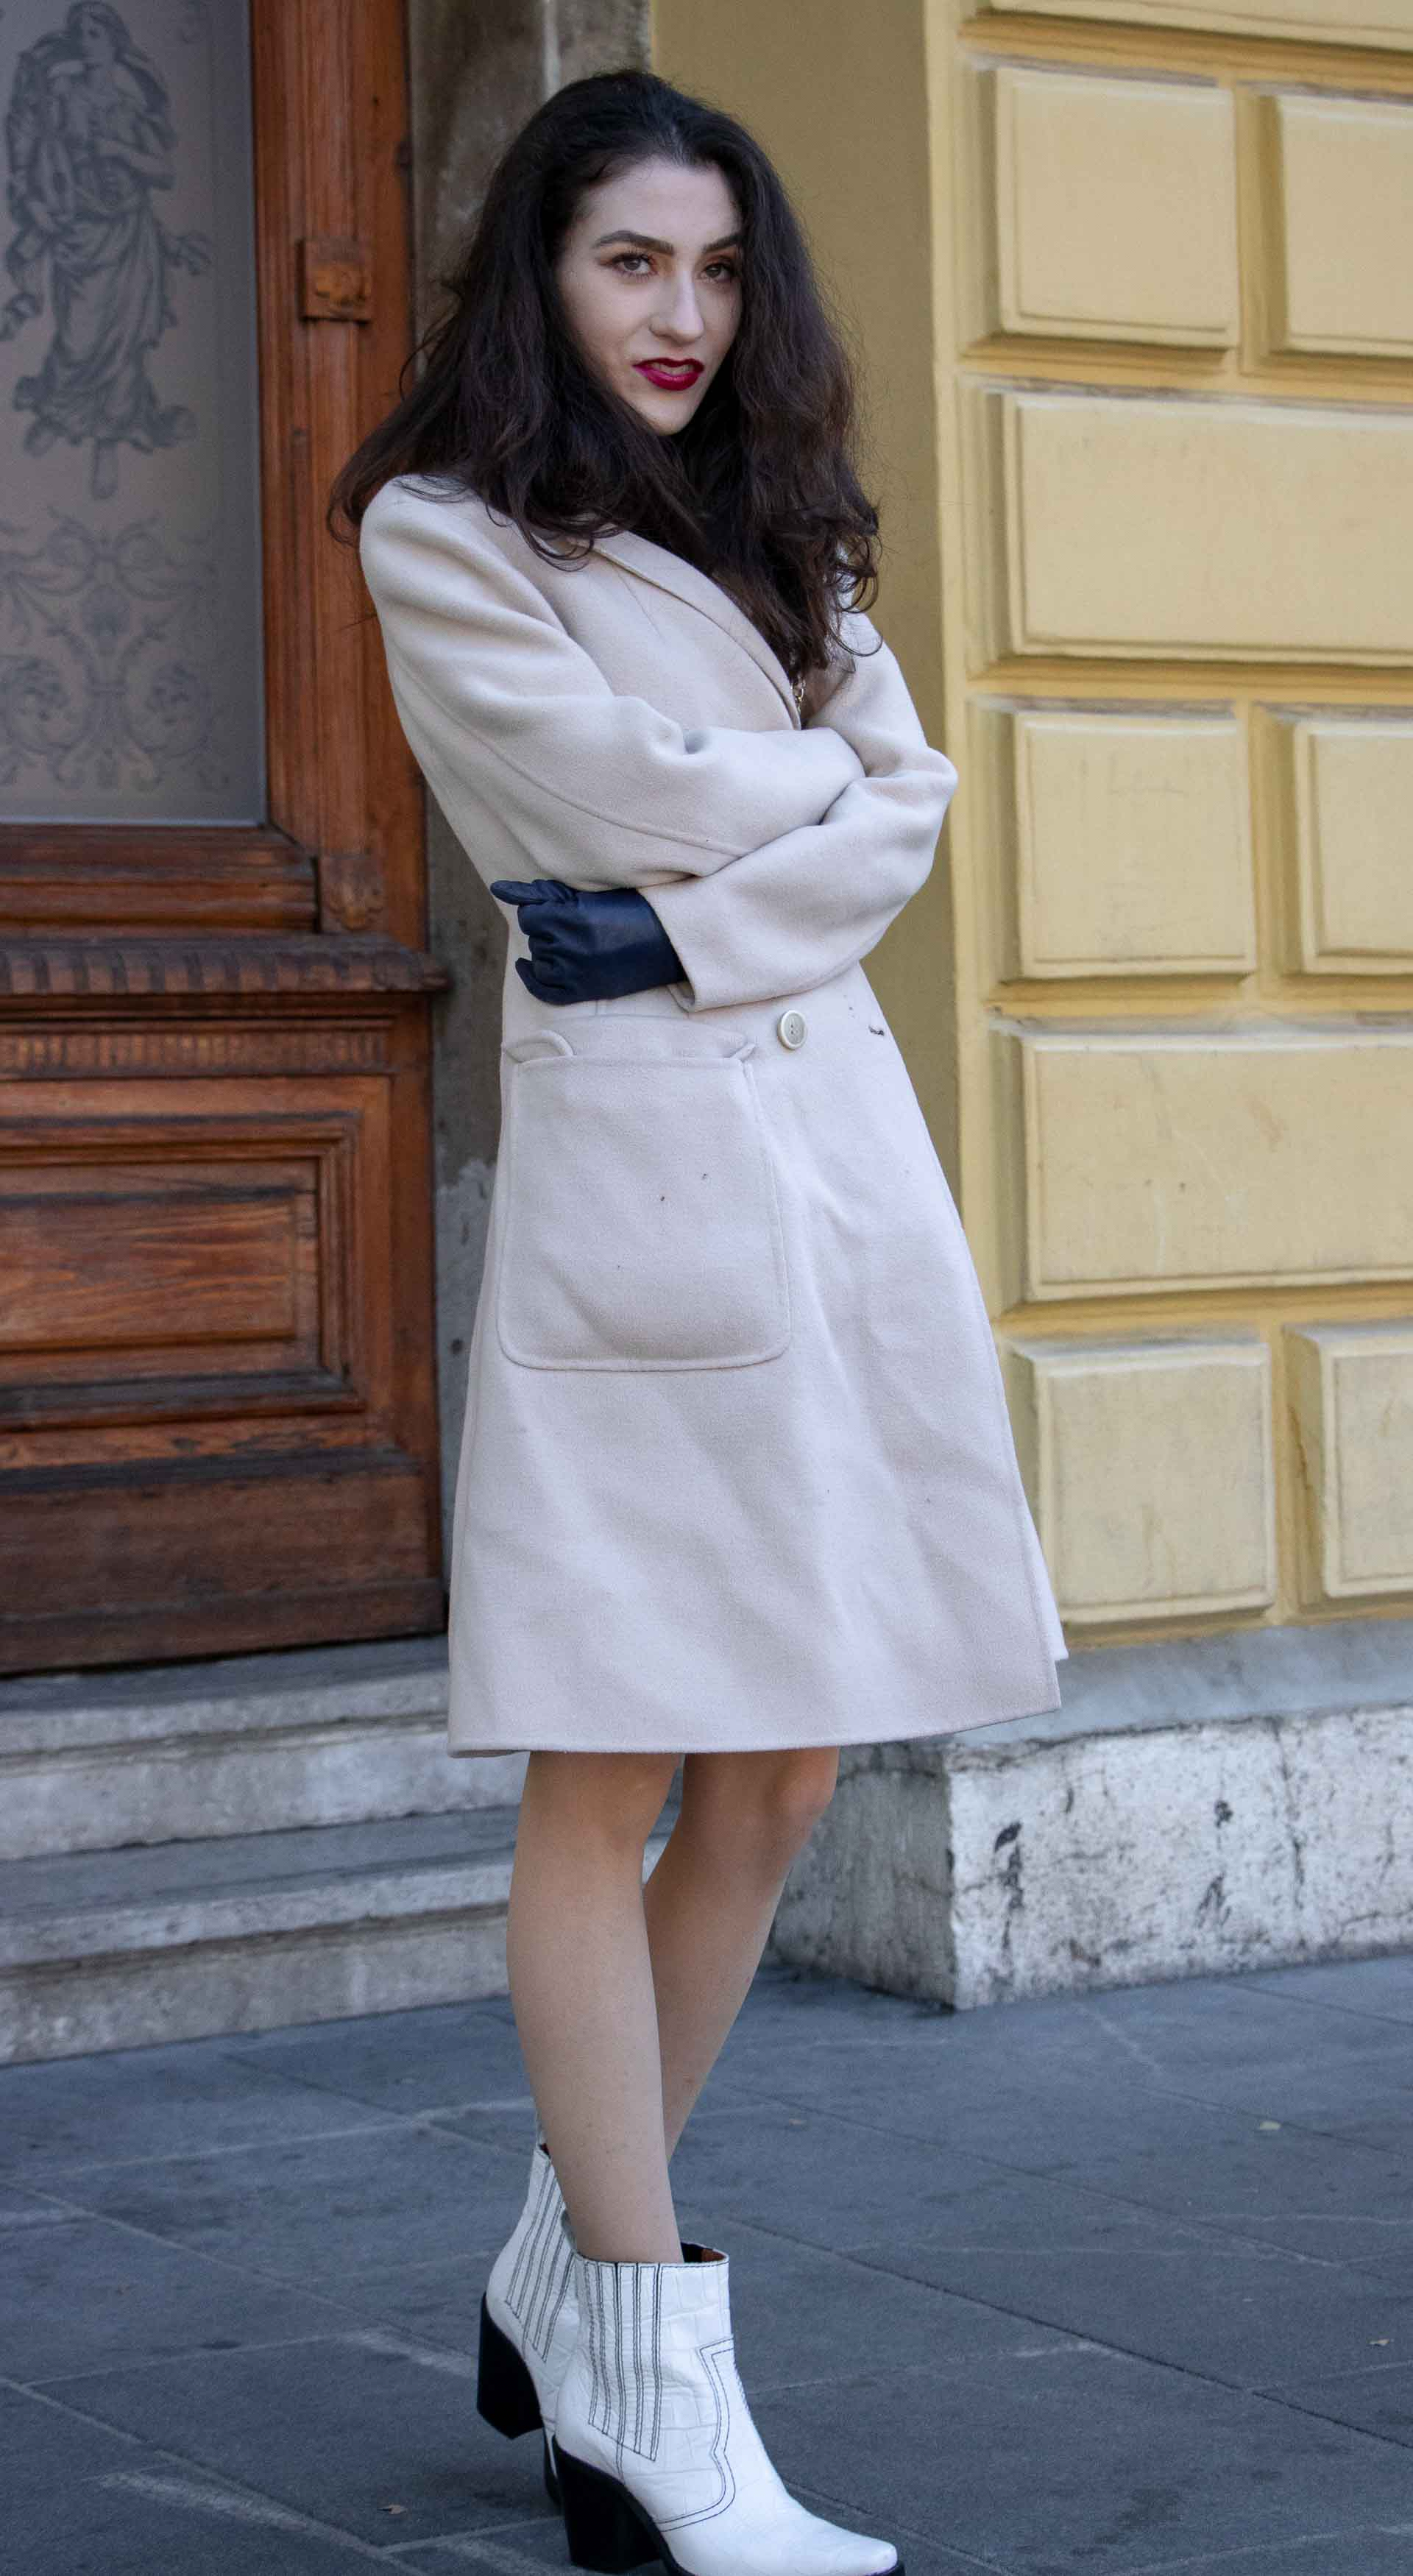 Beautiful Slovenian Fashion Blogger Veronika Lipar of Brunette from Wall wrapped in off-white double breasted Max Mara coat with white Ganni cowboy boots, white chain shoulder bag in morning on the street in Ljubljana